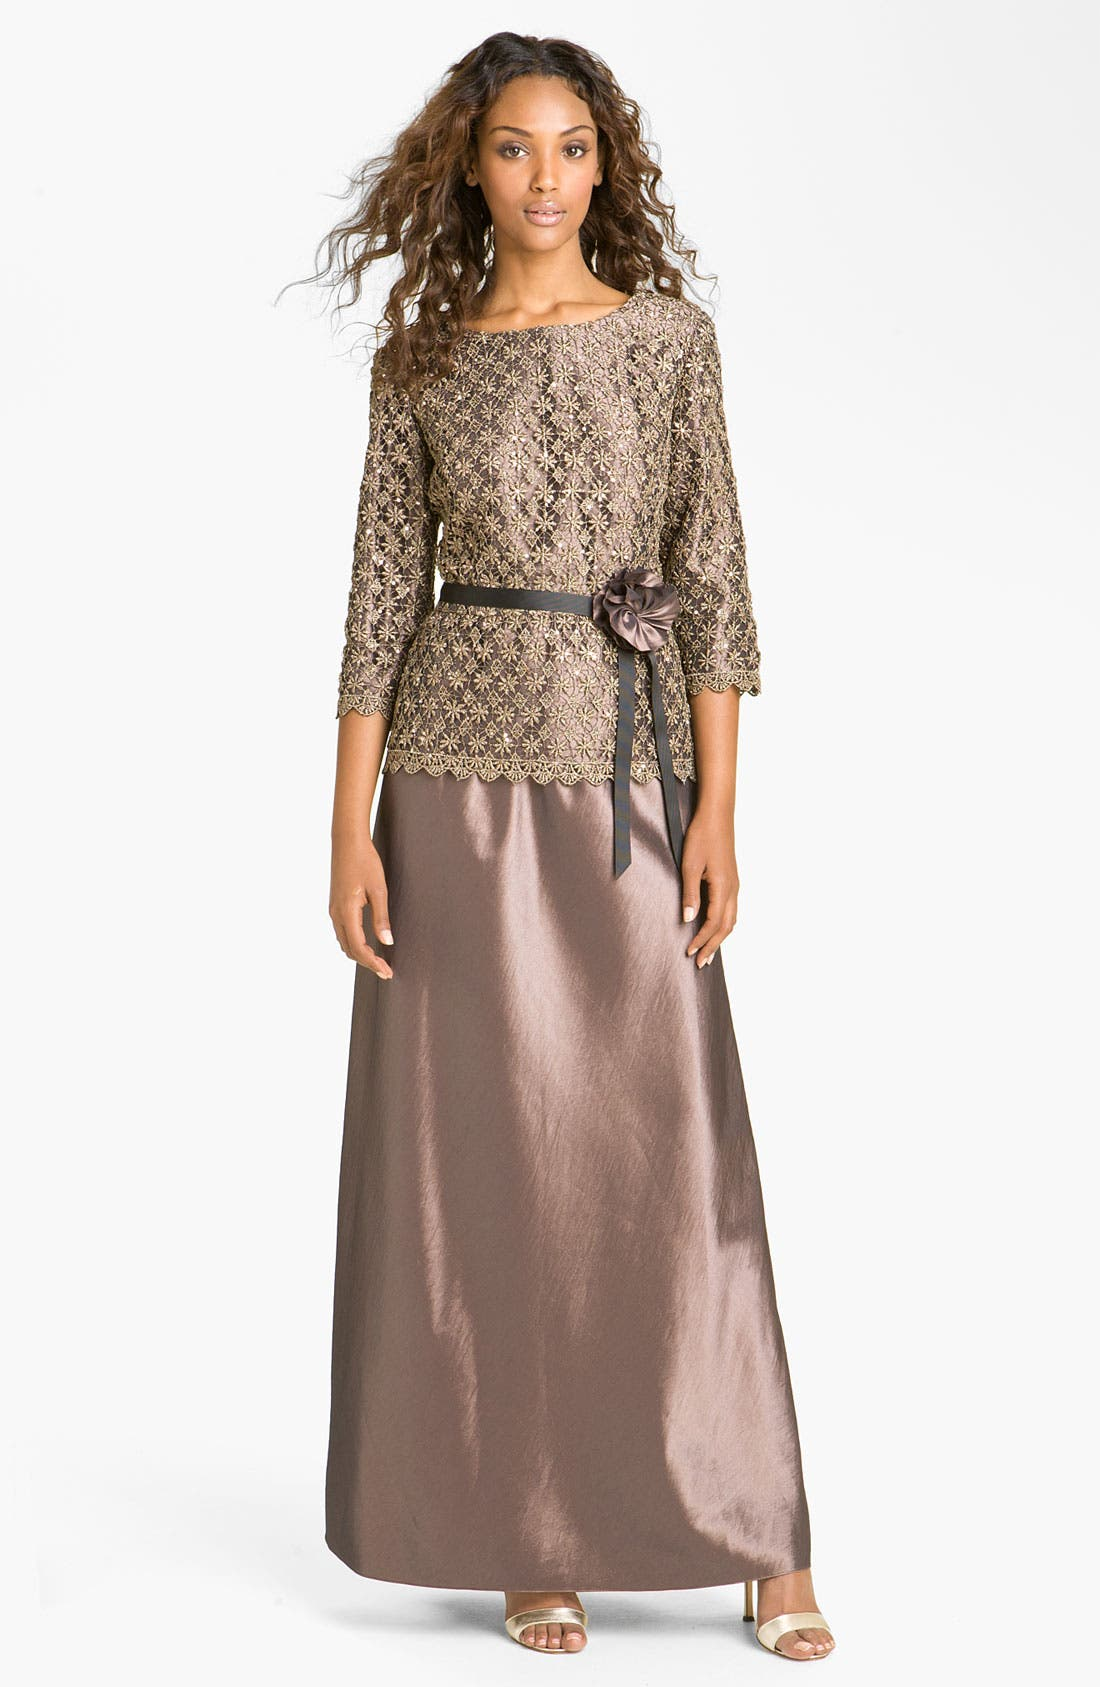 Alternate Image 1 Selected - Alex Evenings Two-Piece Lace Overlay Taffeta Dress